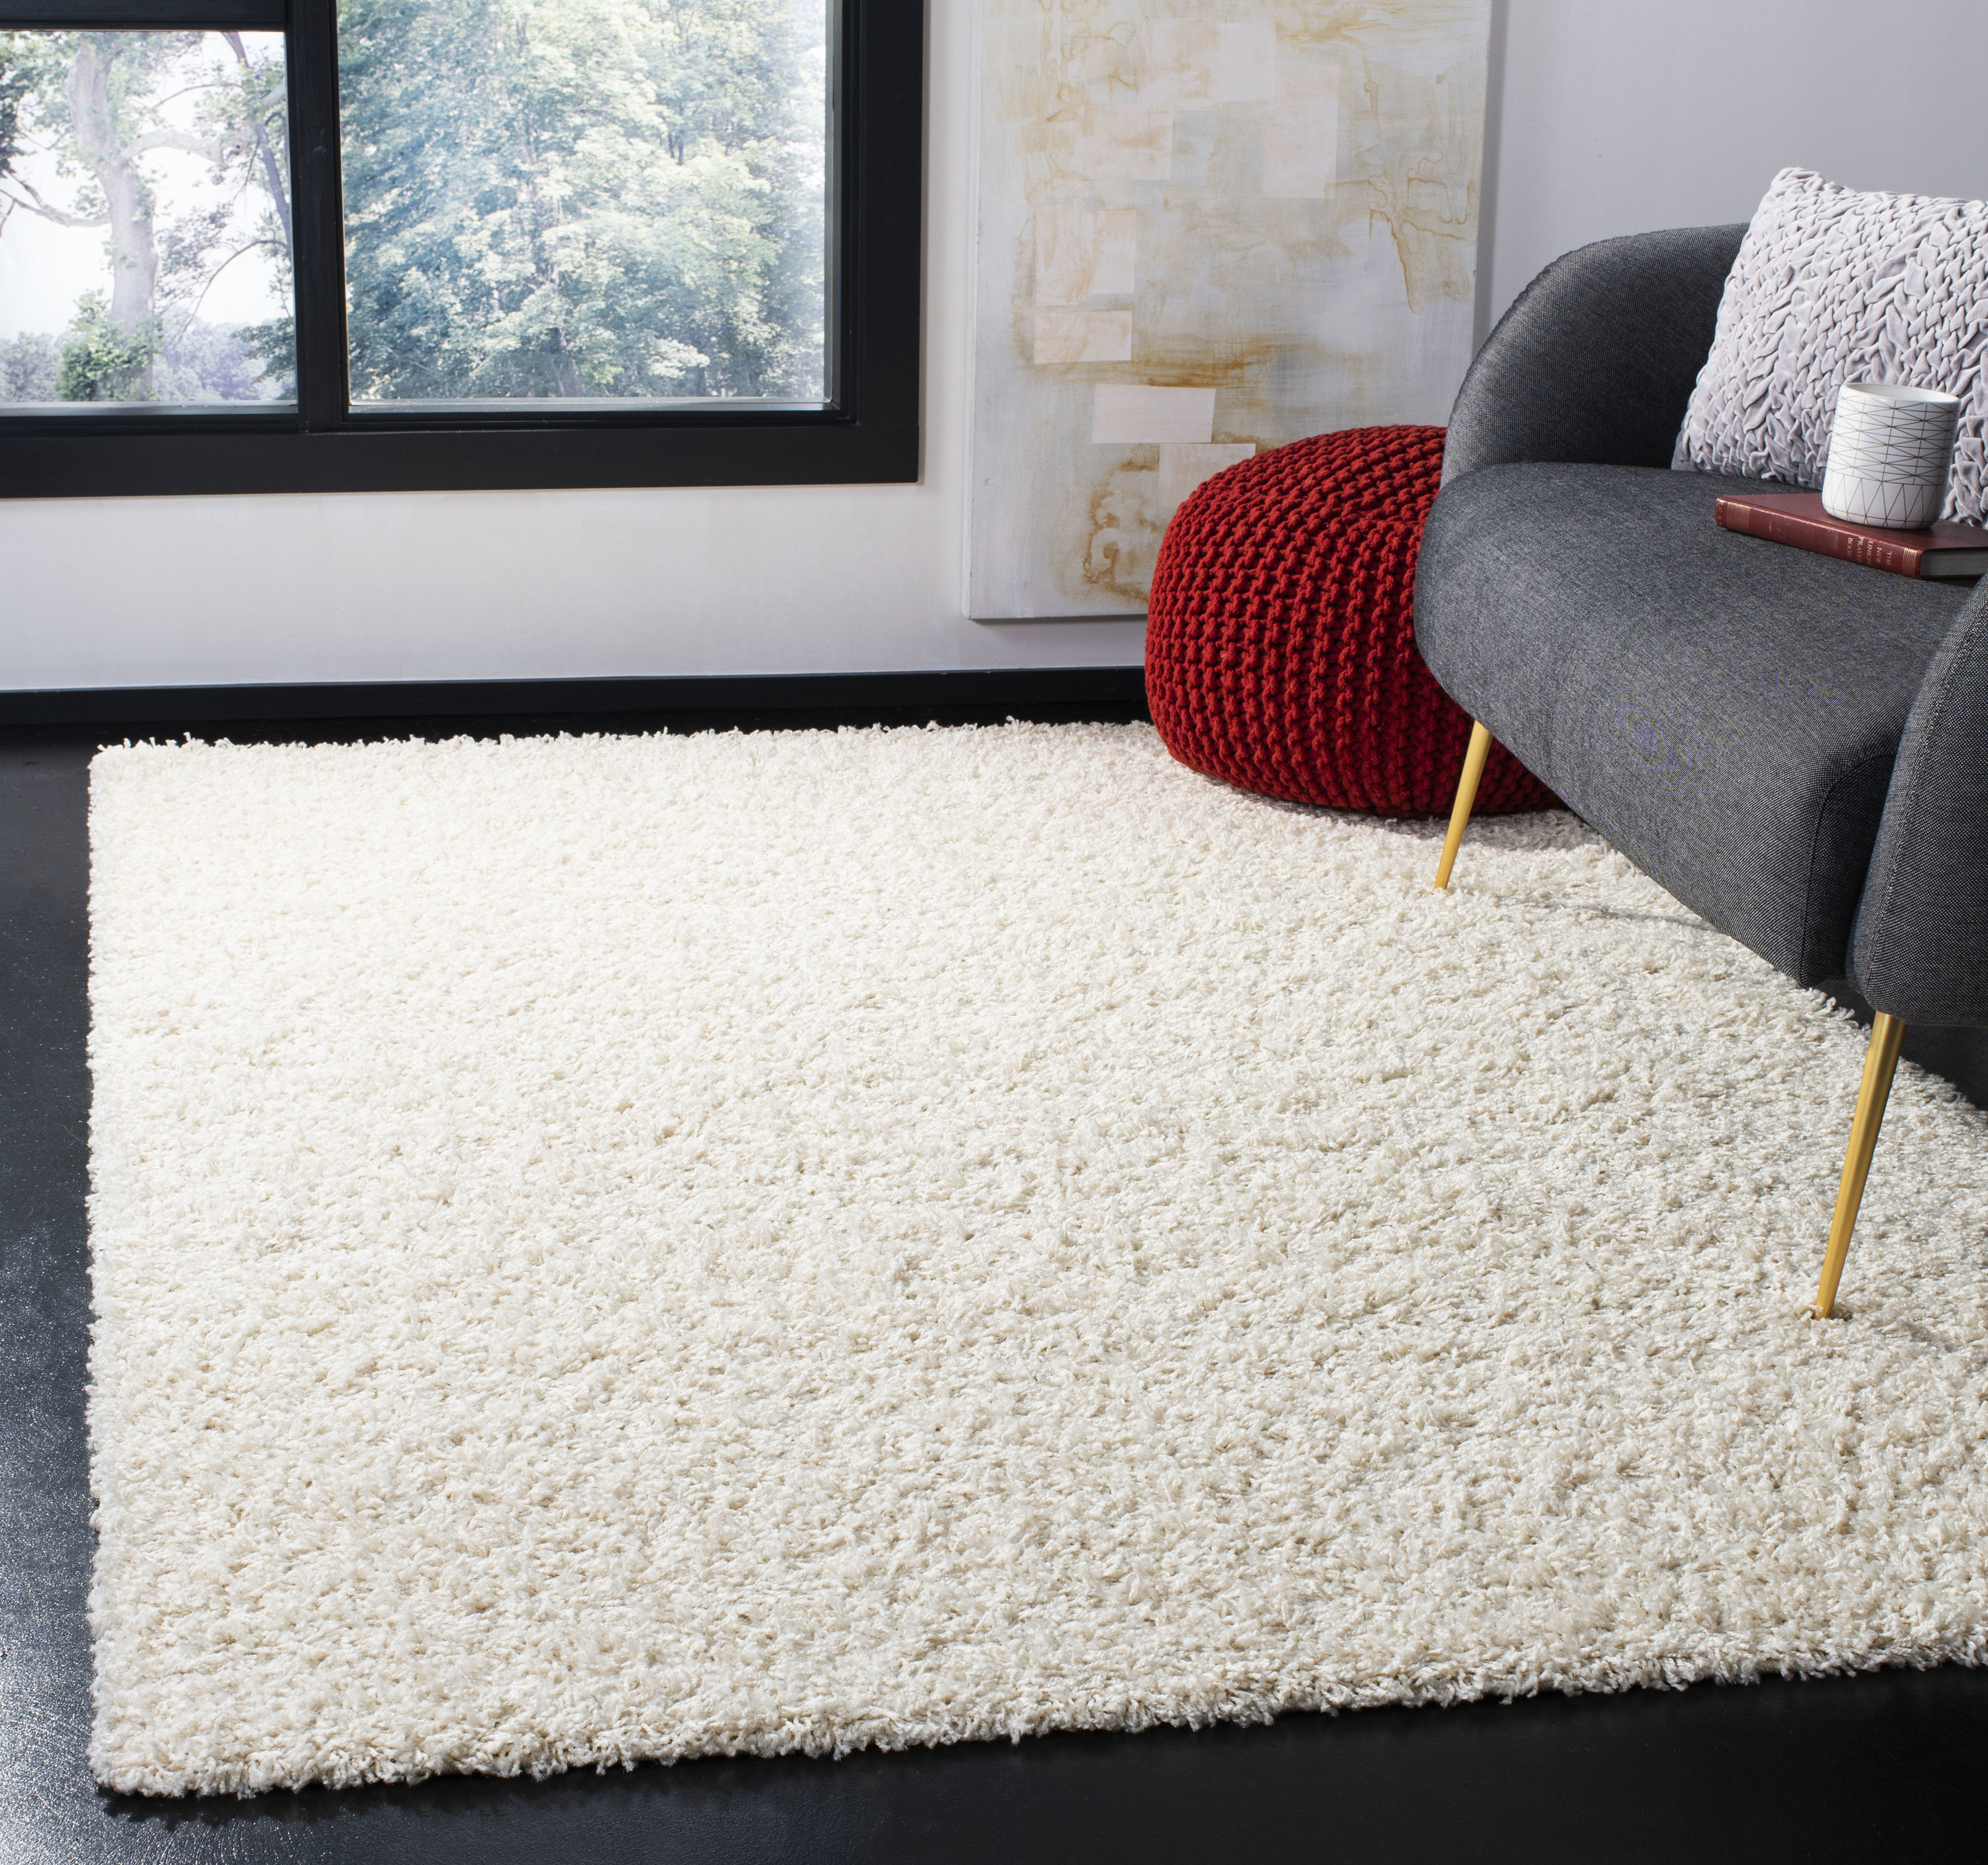 The rug, which has a shag texture, in a square size, in white